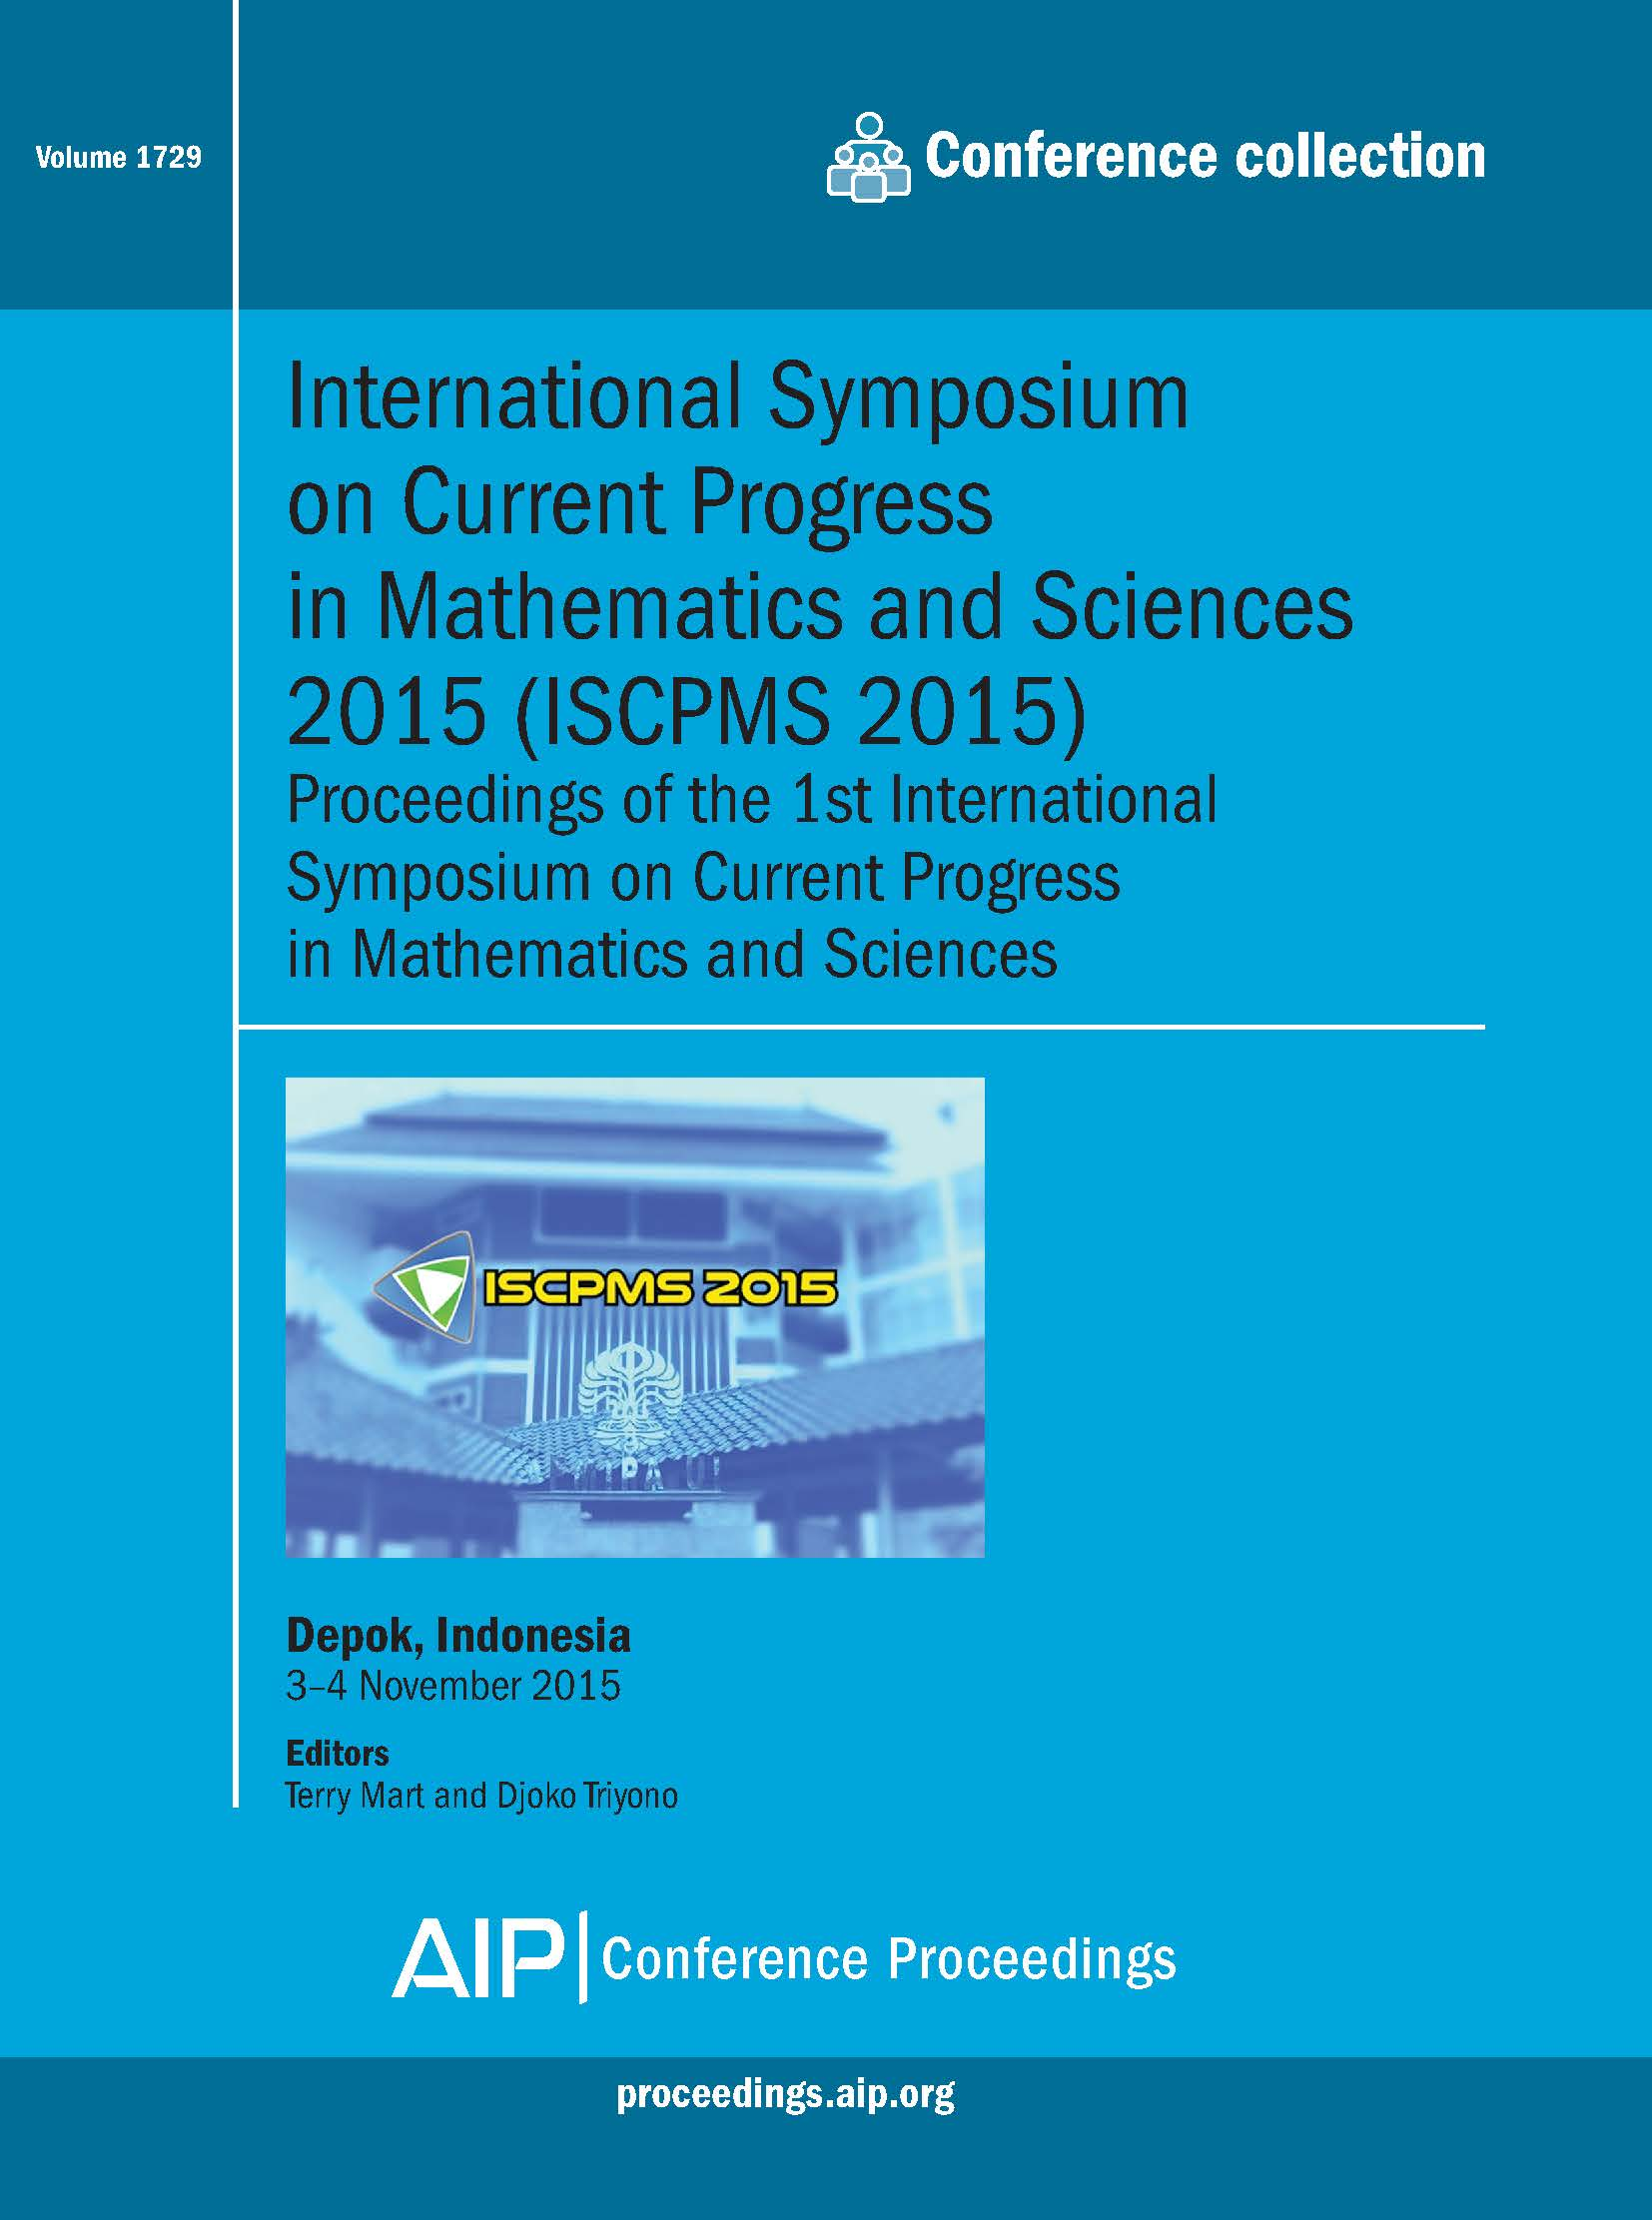 Volume 1729: International Symposium on Current Progress in